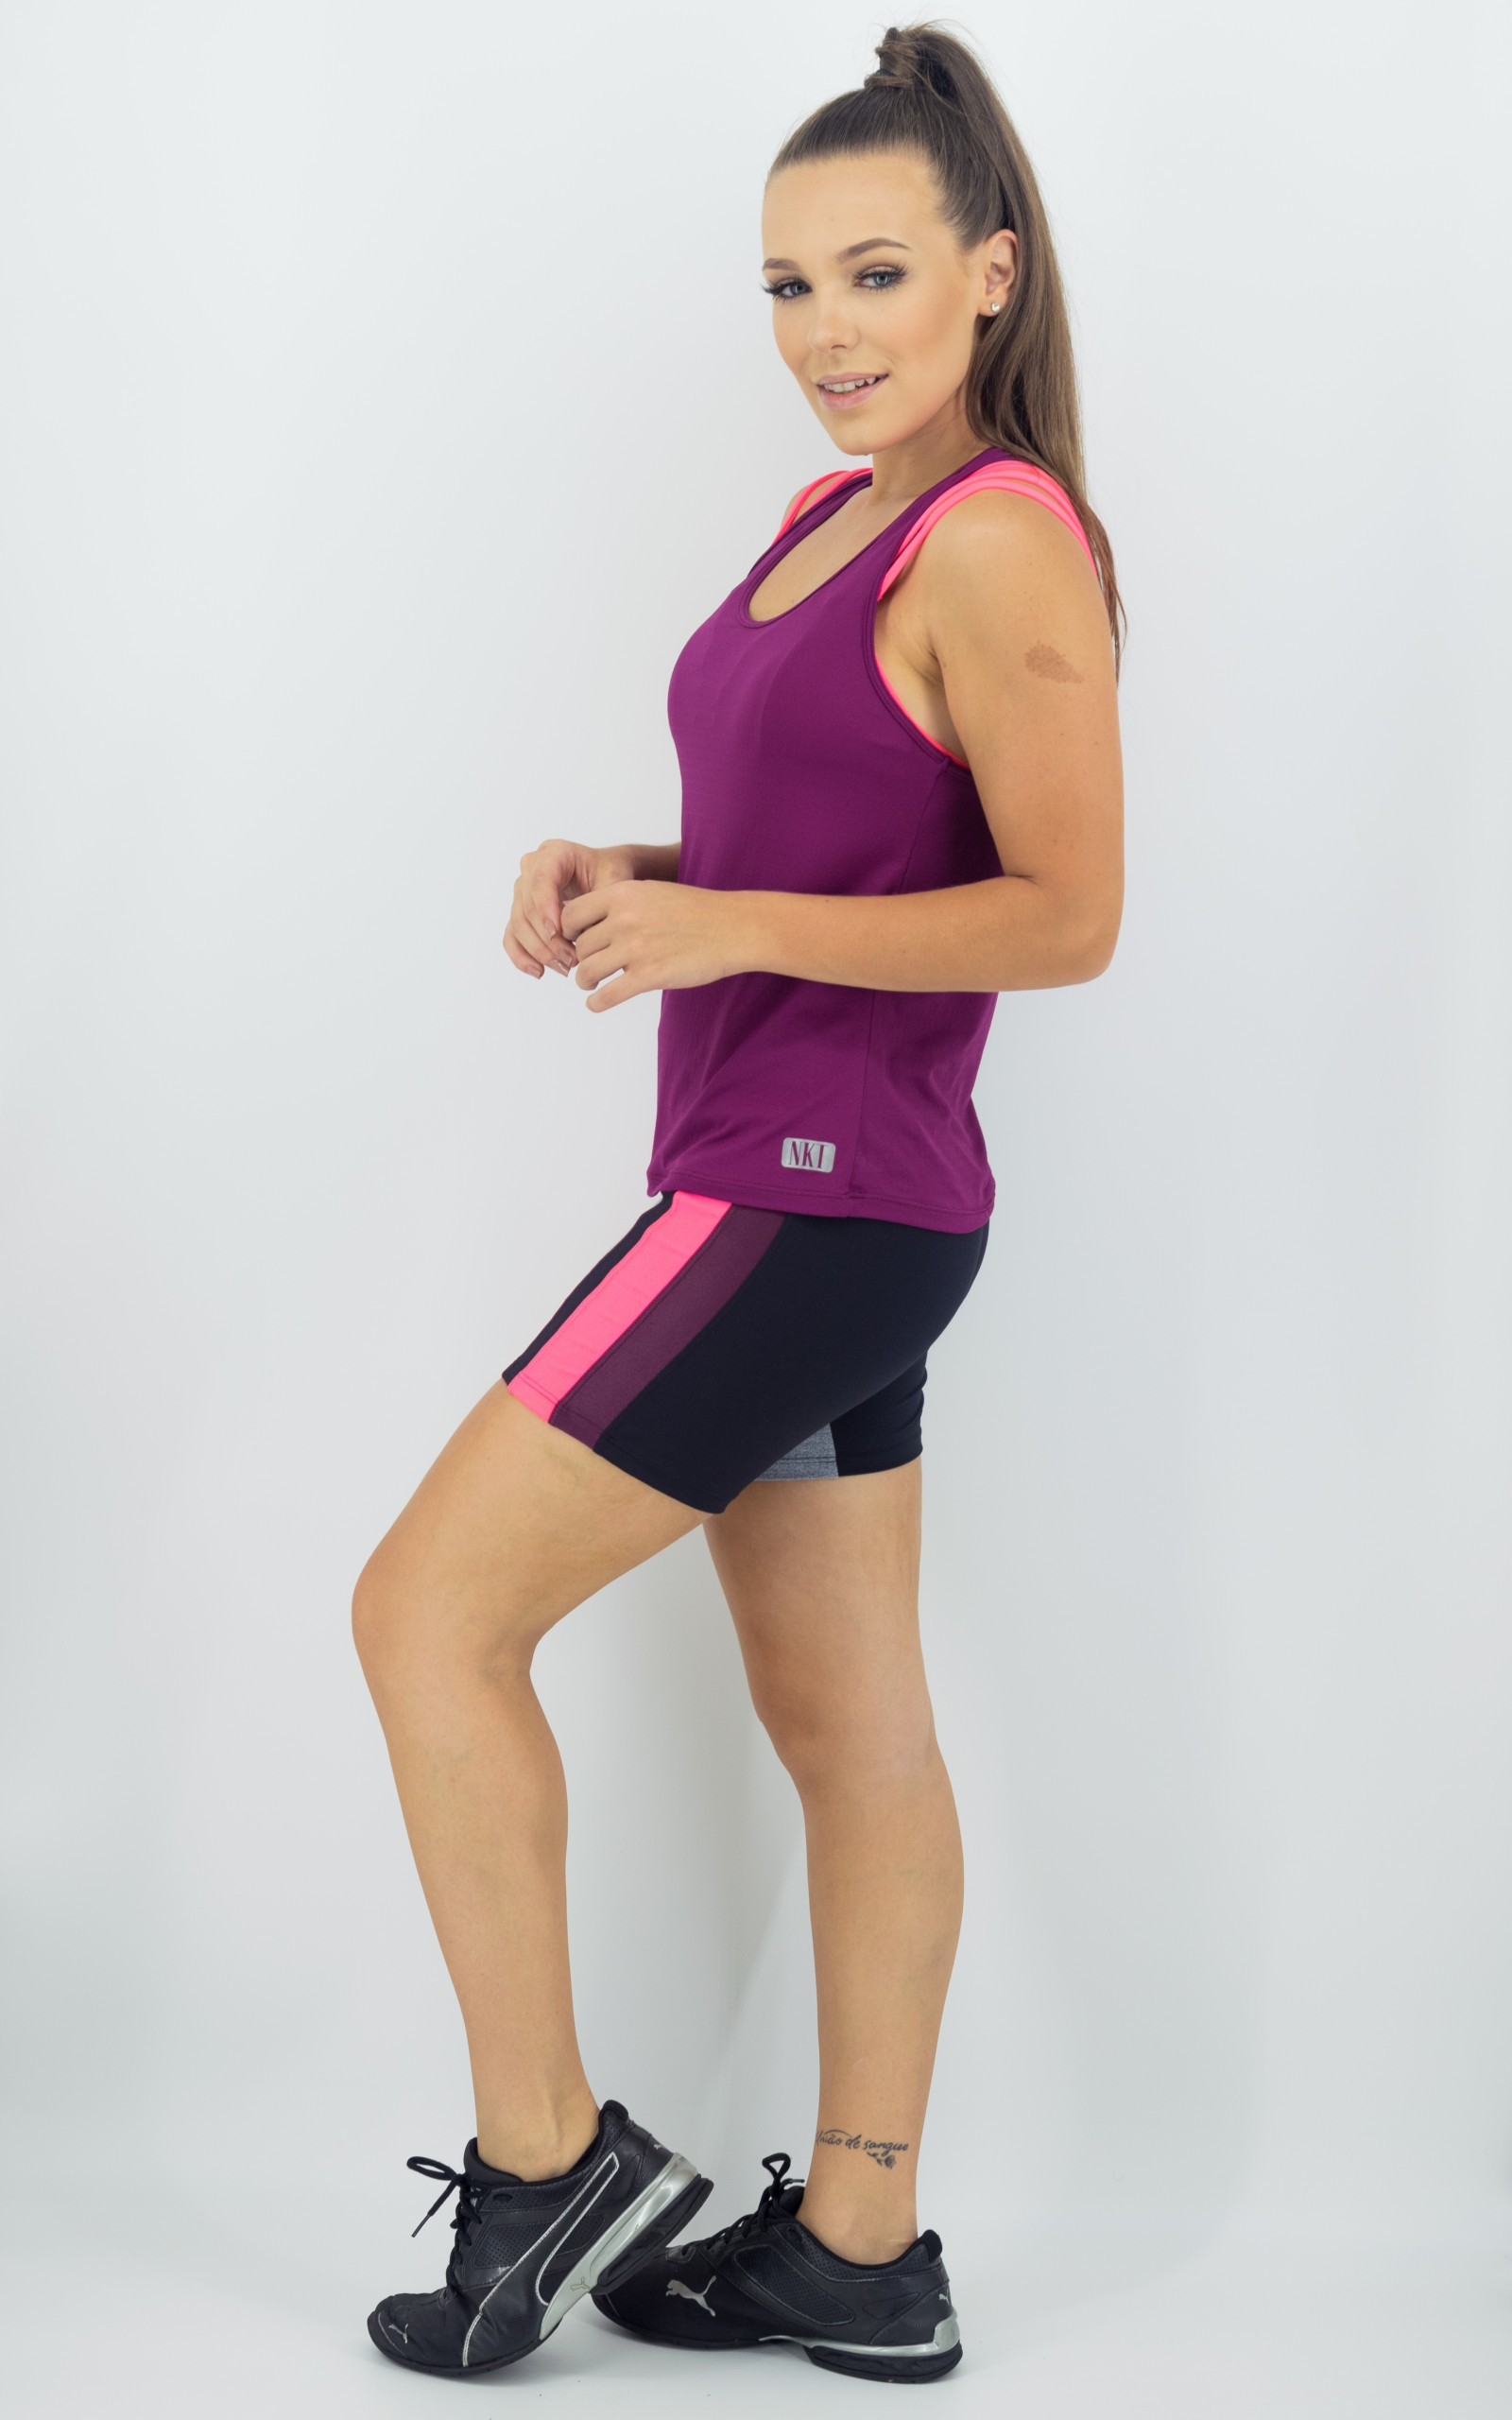 Bermuda Mellowness Glow, Coleção Move Your Body - NKT Fitwear Moda Fitness